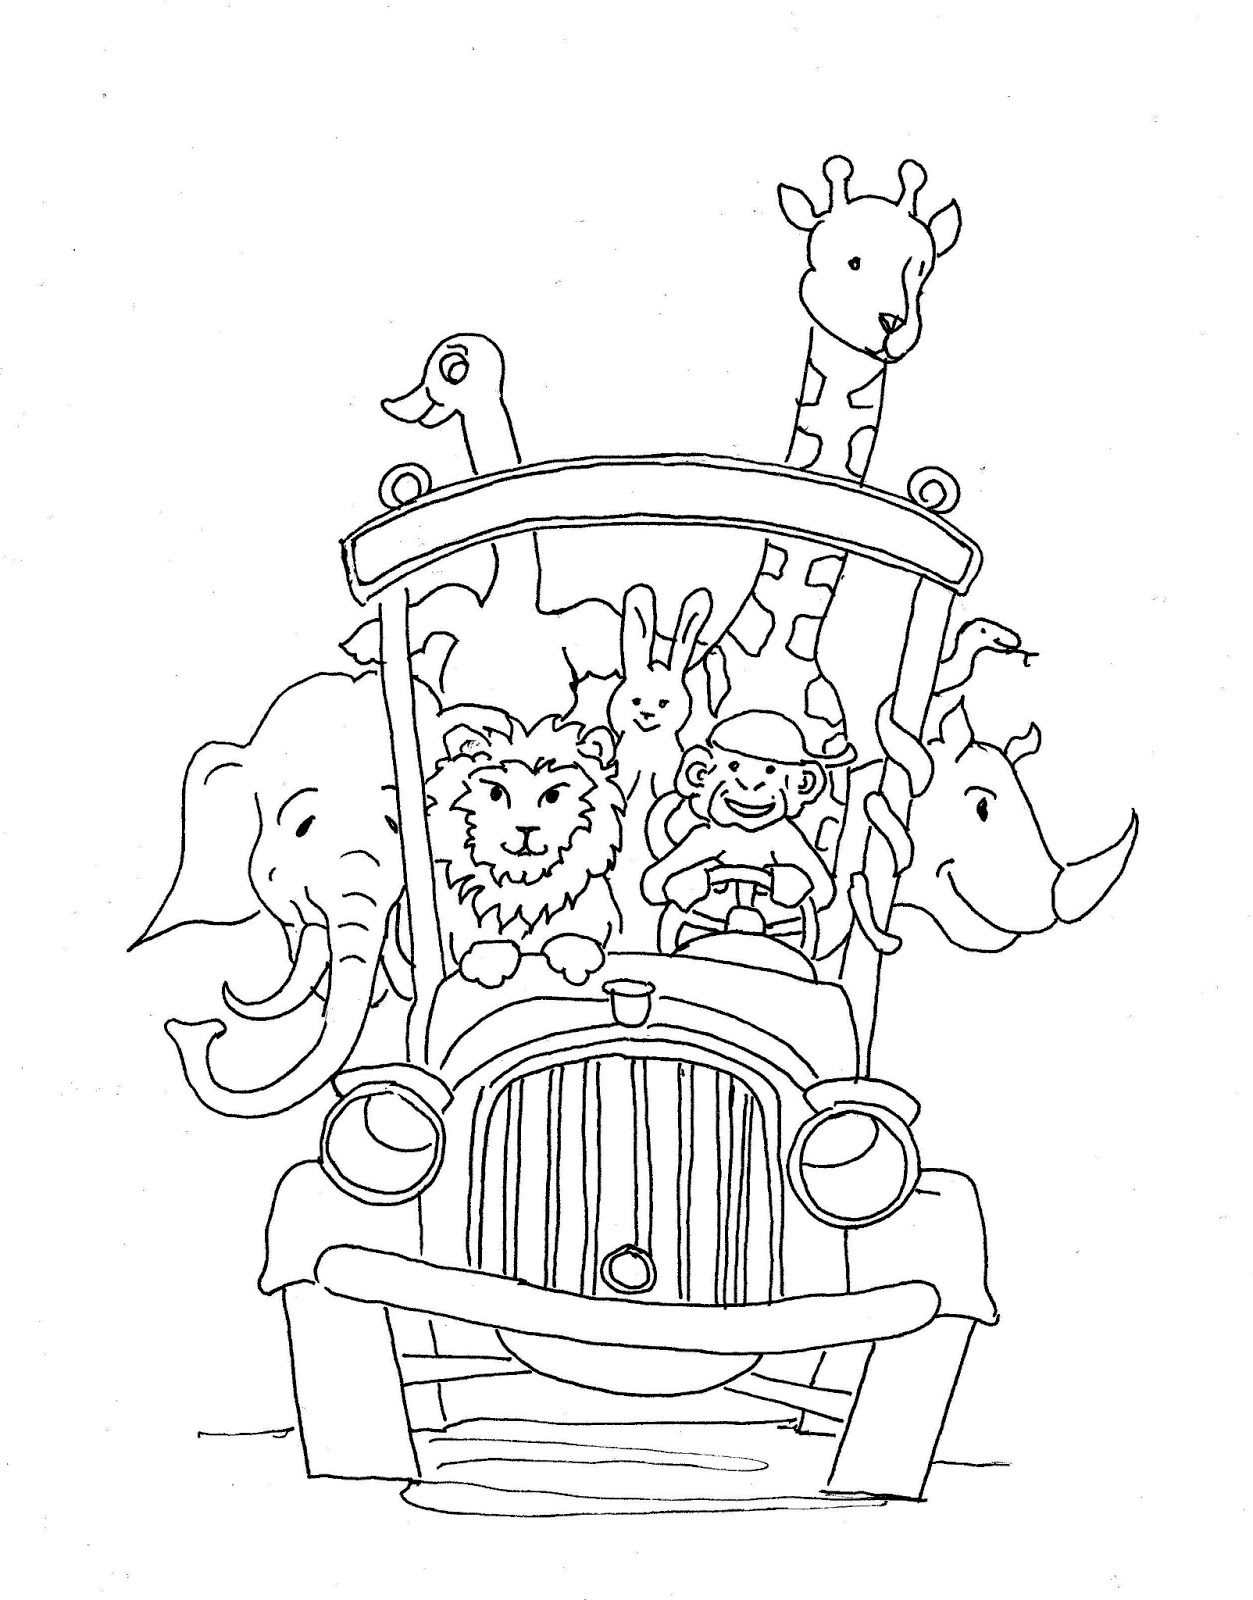 Coloring Pages For Kids By Mr Adron Animal School Bus Printable Drawing Page